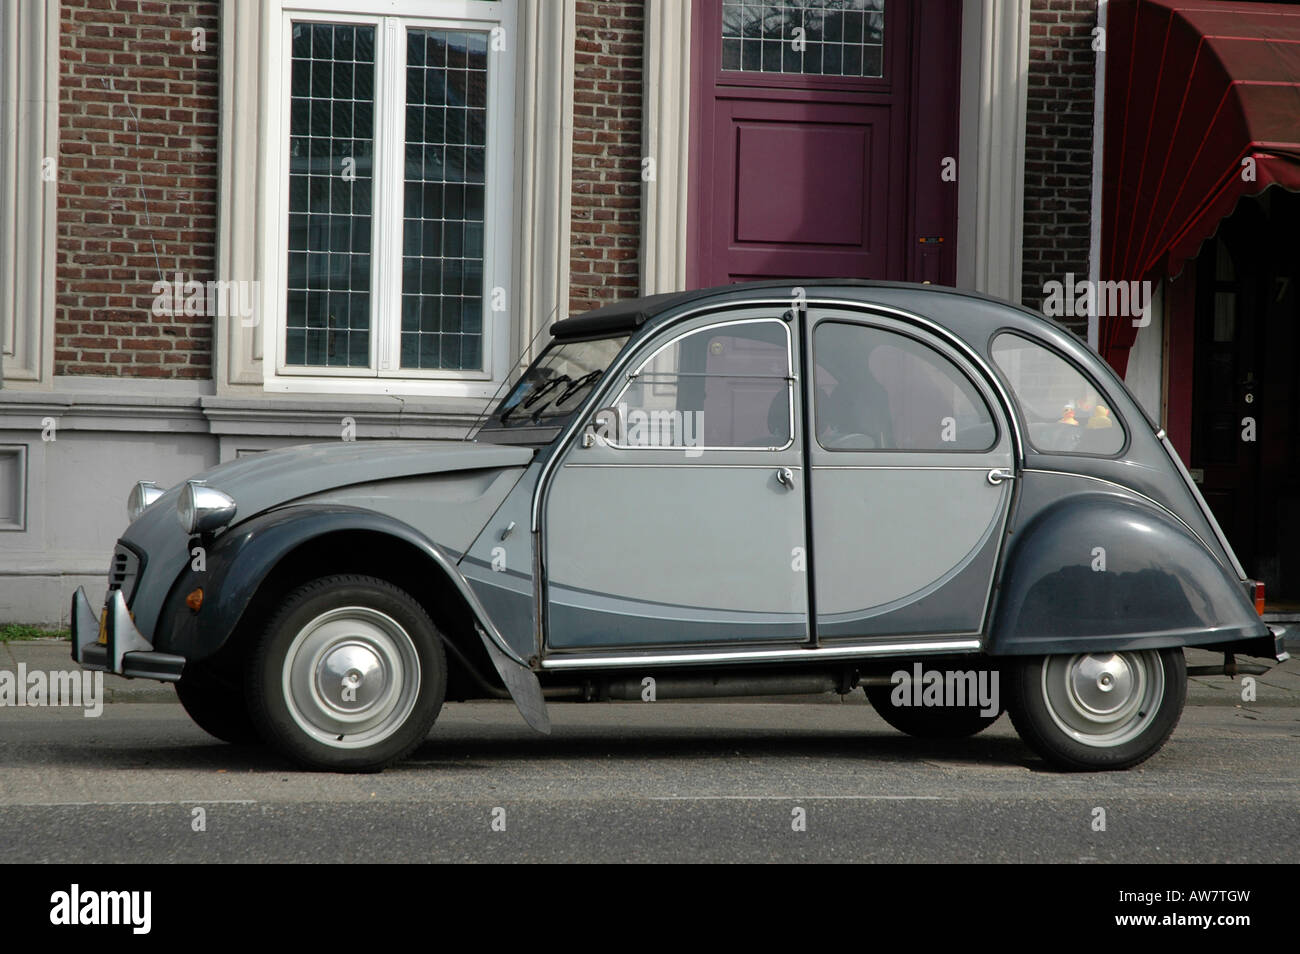 citroen 2cv  deux chevaux  in attractive dark and light